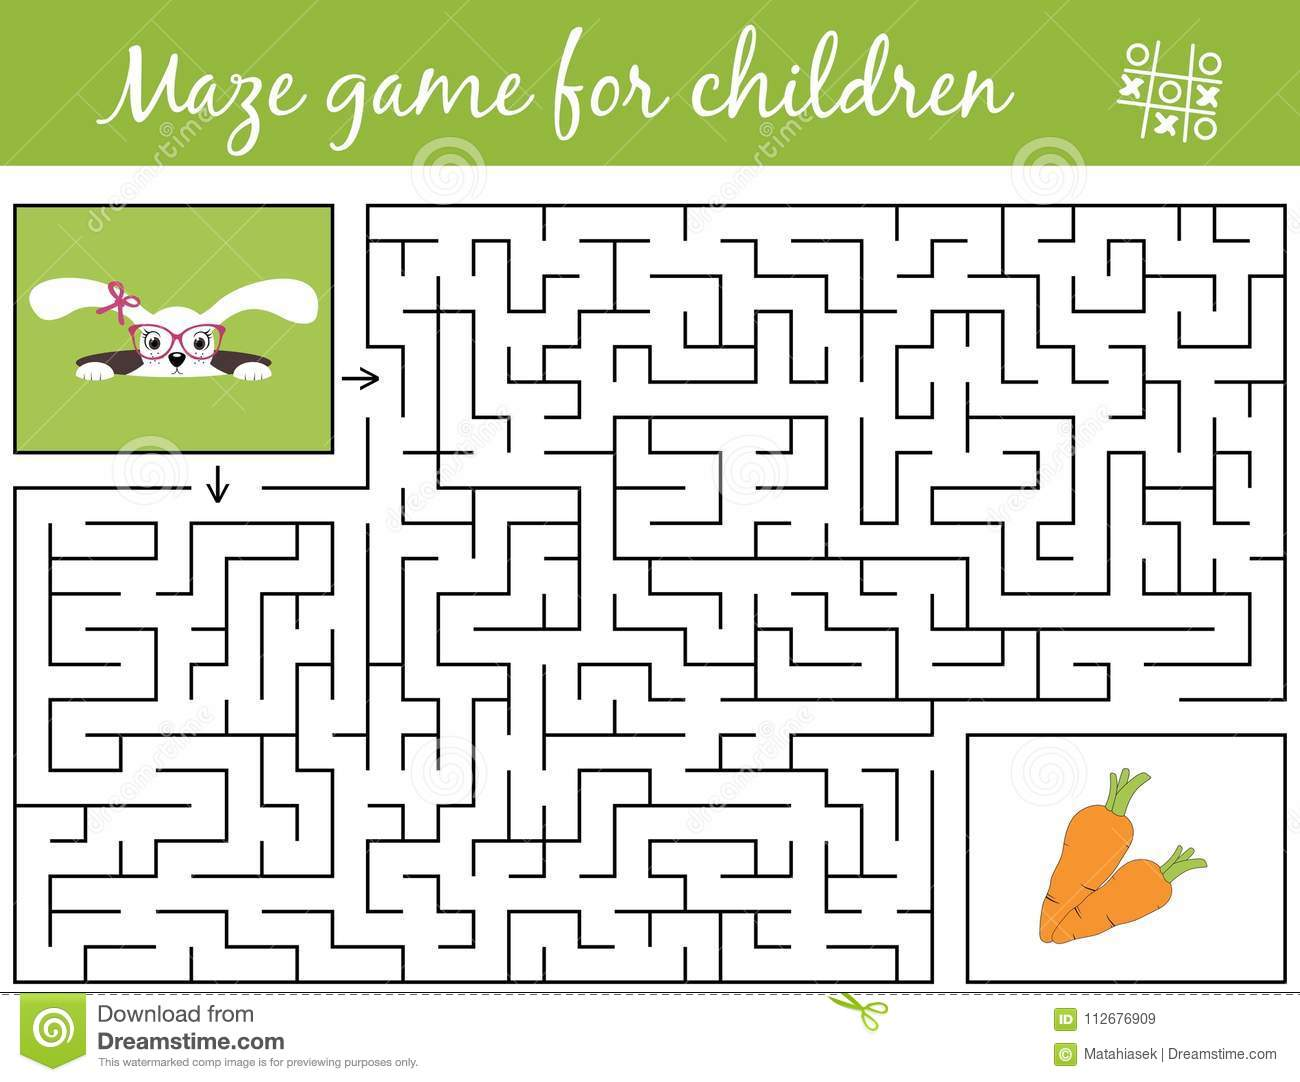 help bunny girl find path to carrots through the labyrinth maze